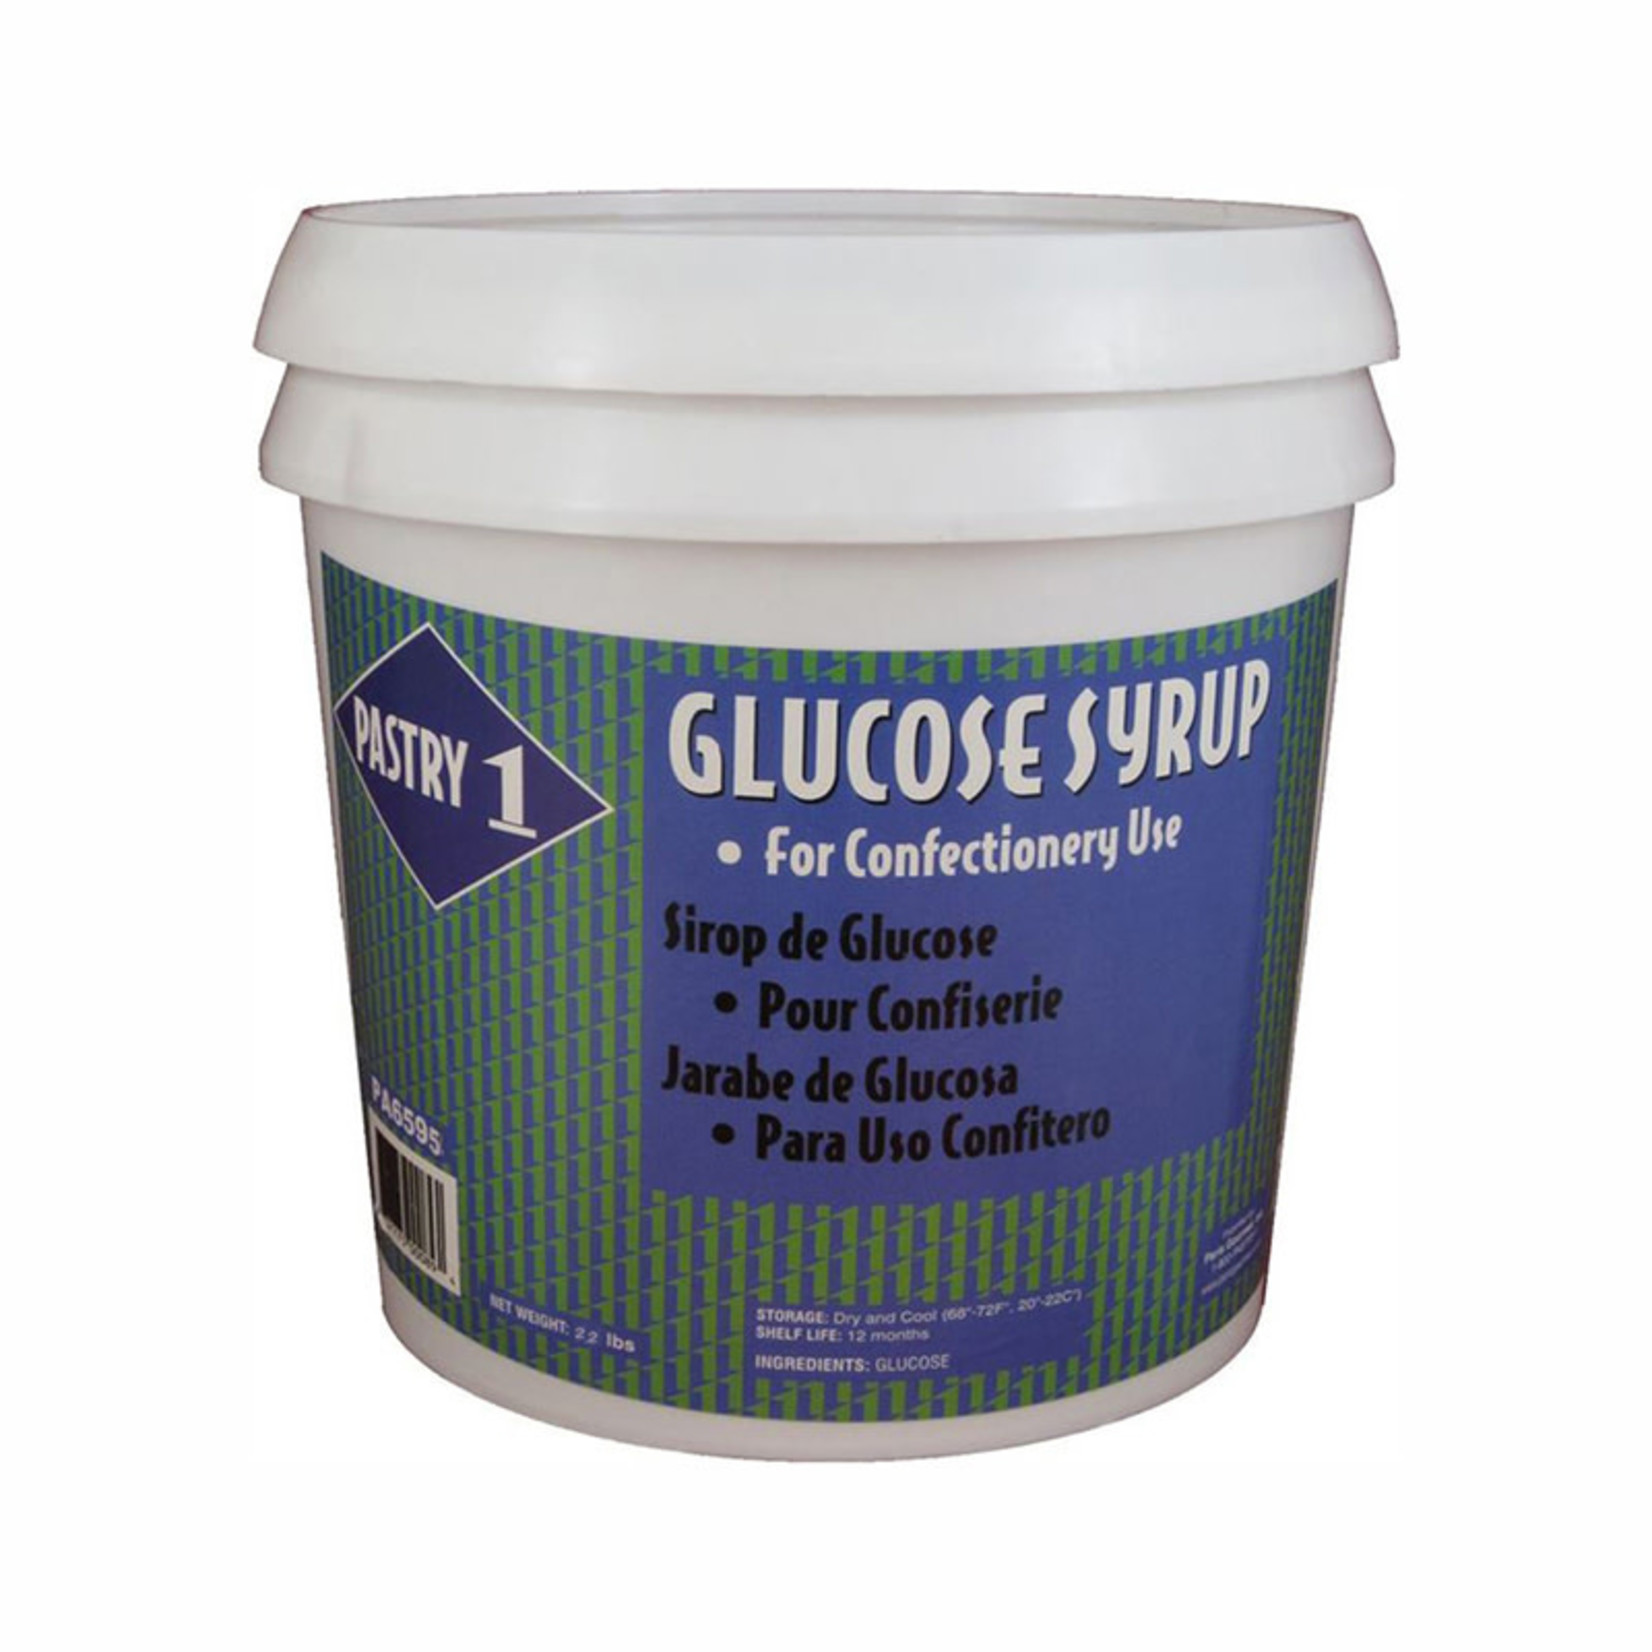 Pastry 1 Pastry 1 - Glucose Syrup, small - 2.2lb, PA6595